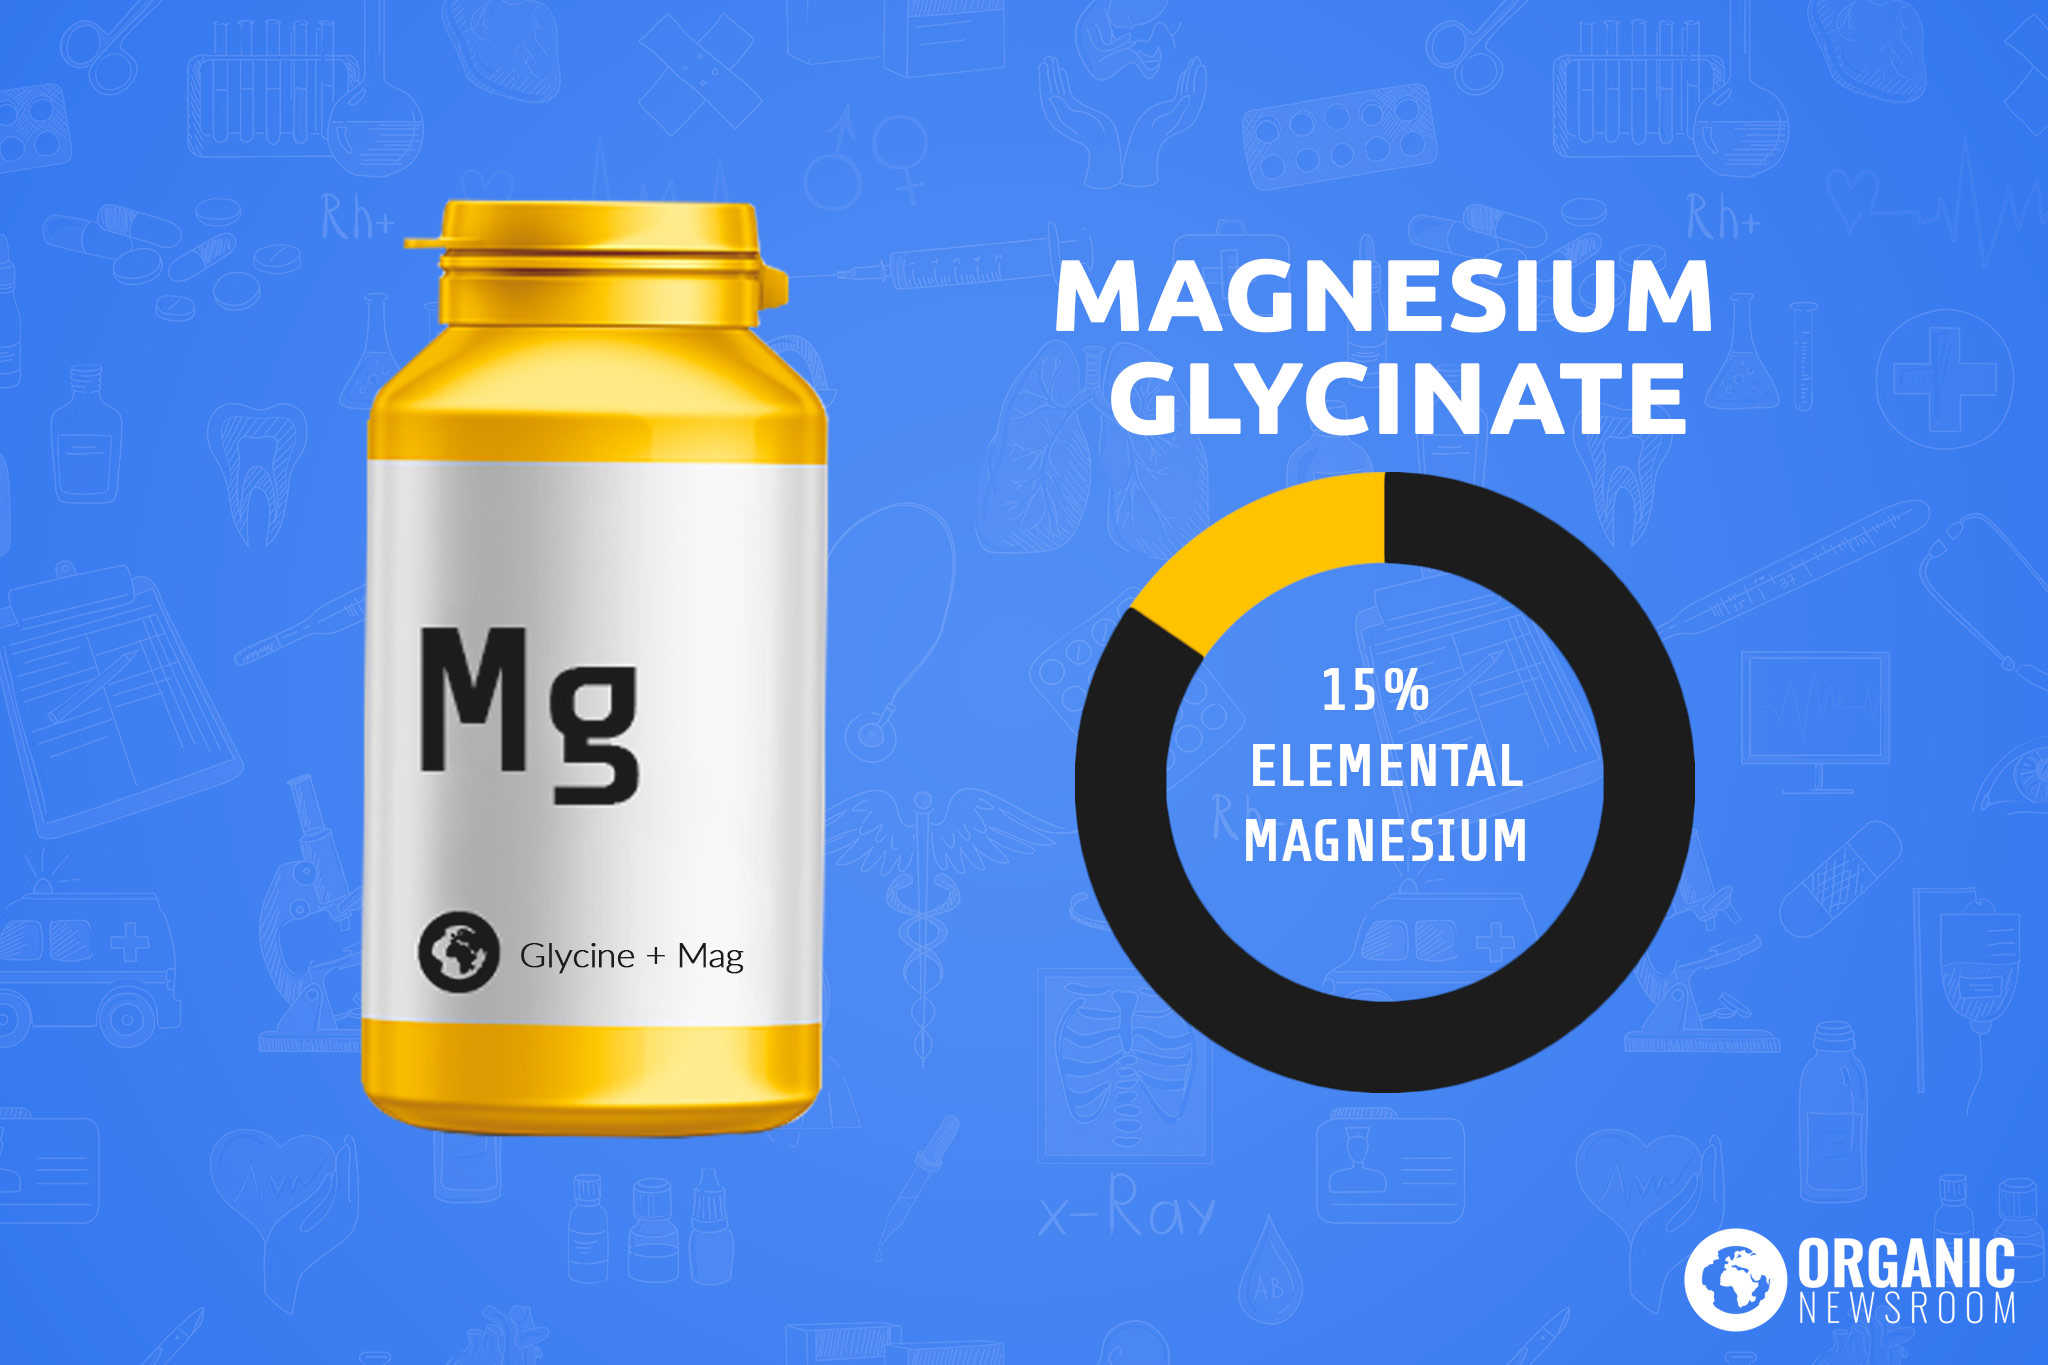 Magnesium Glycinate Composition OrganicNewsroom